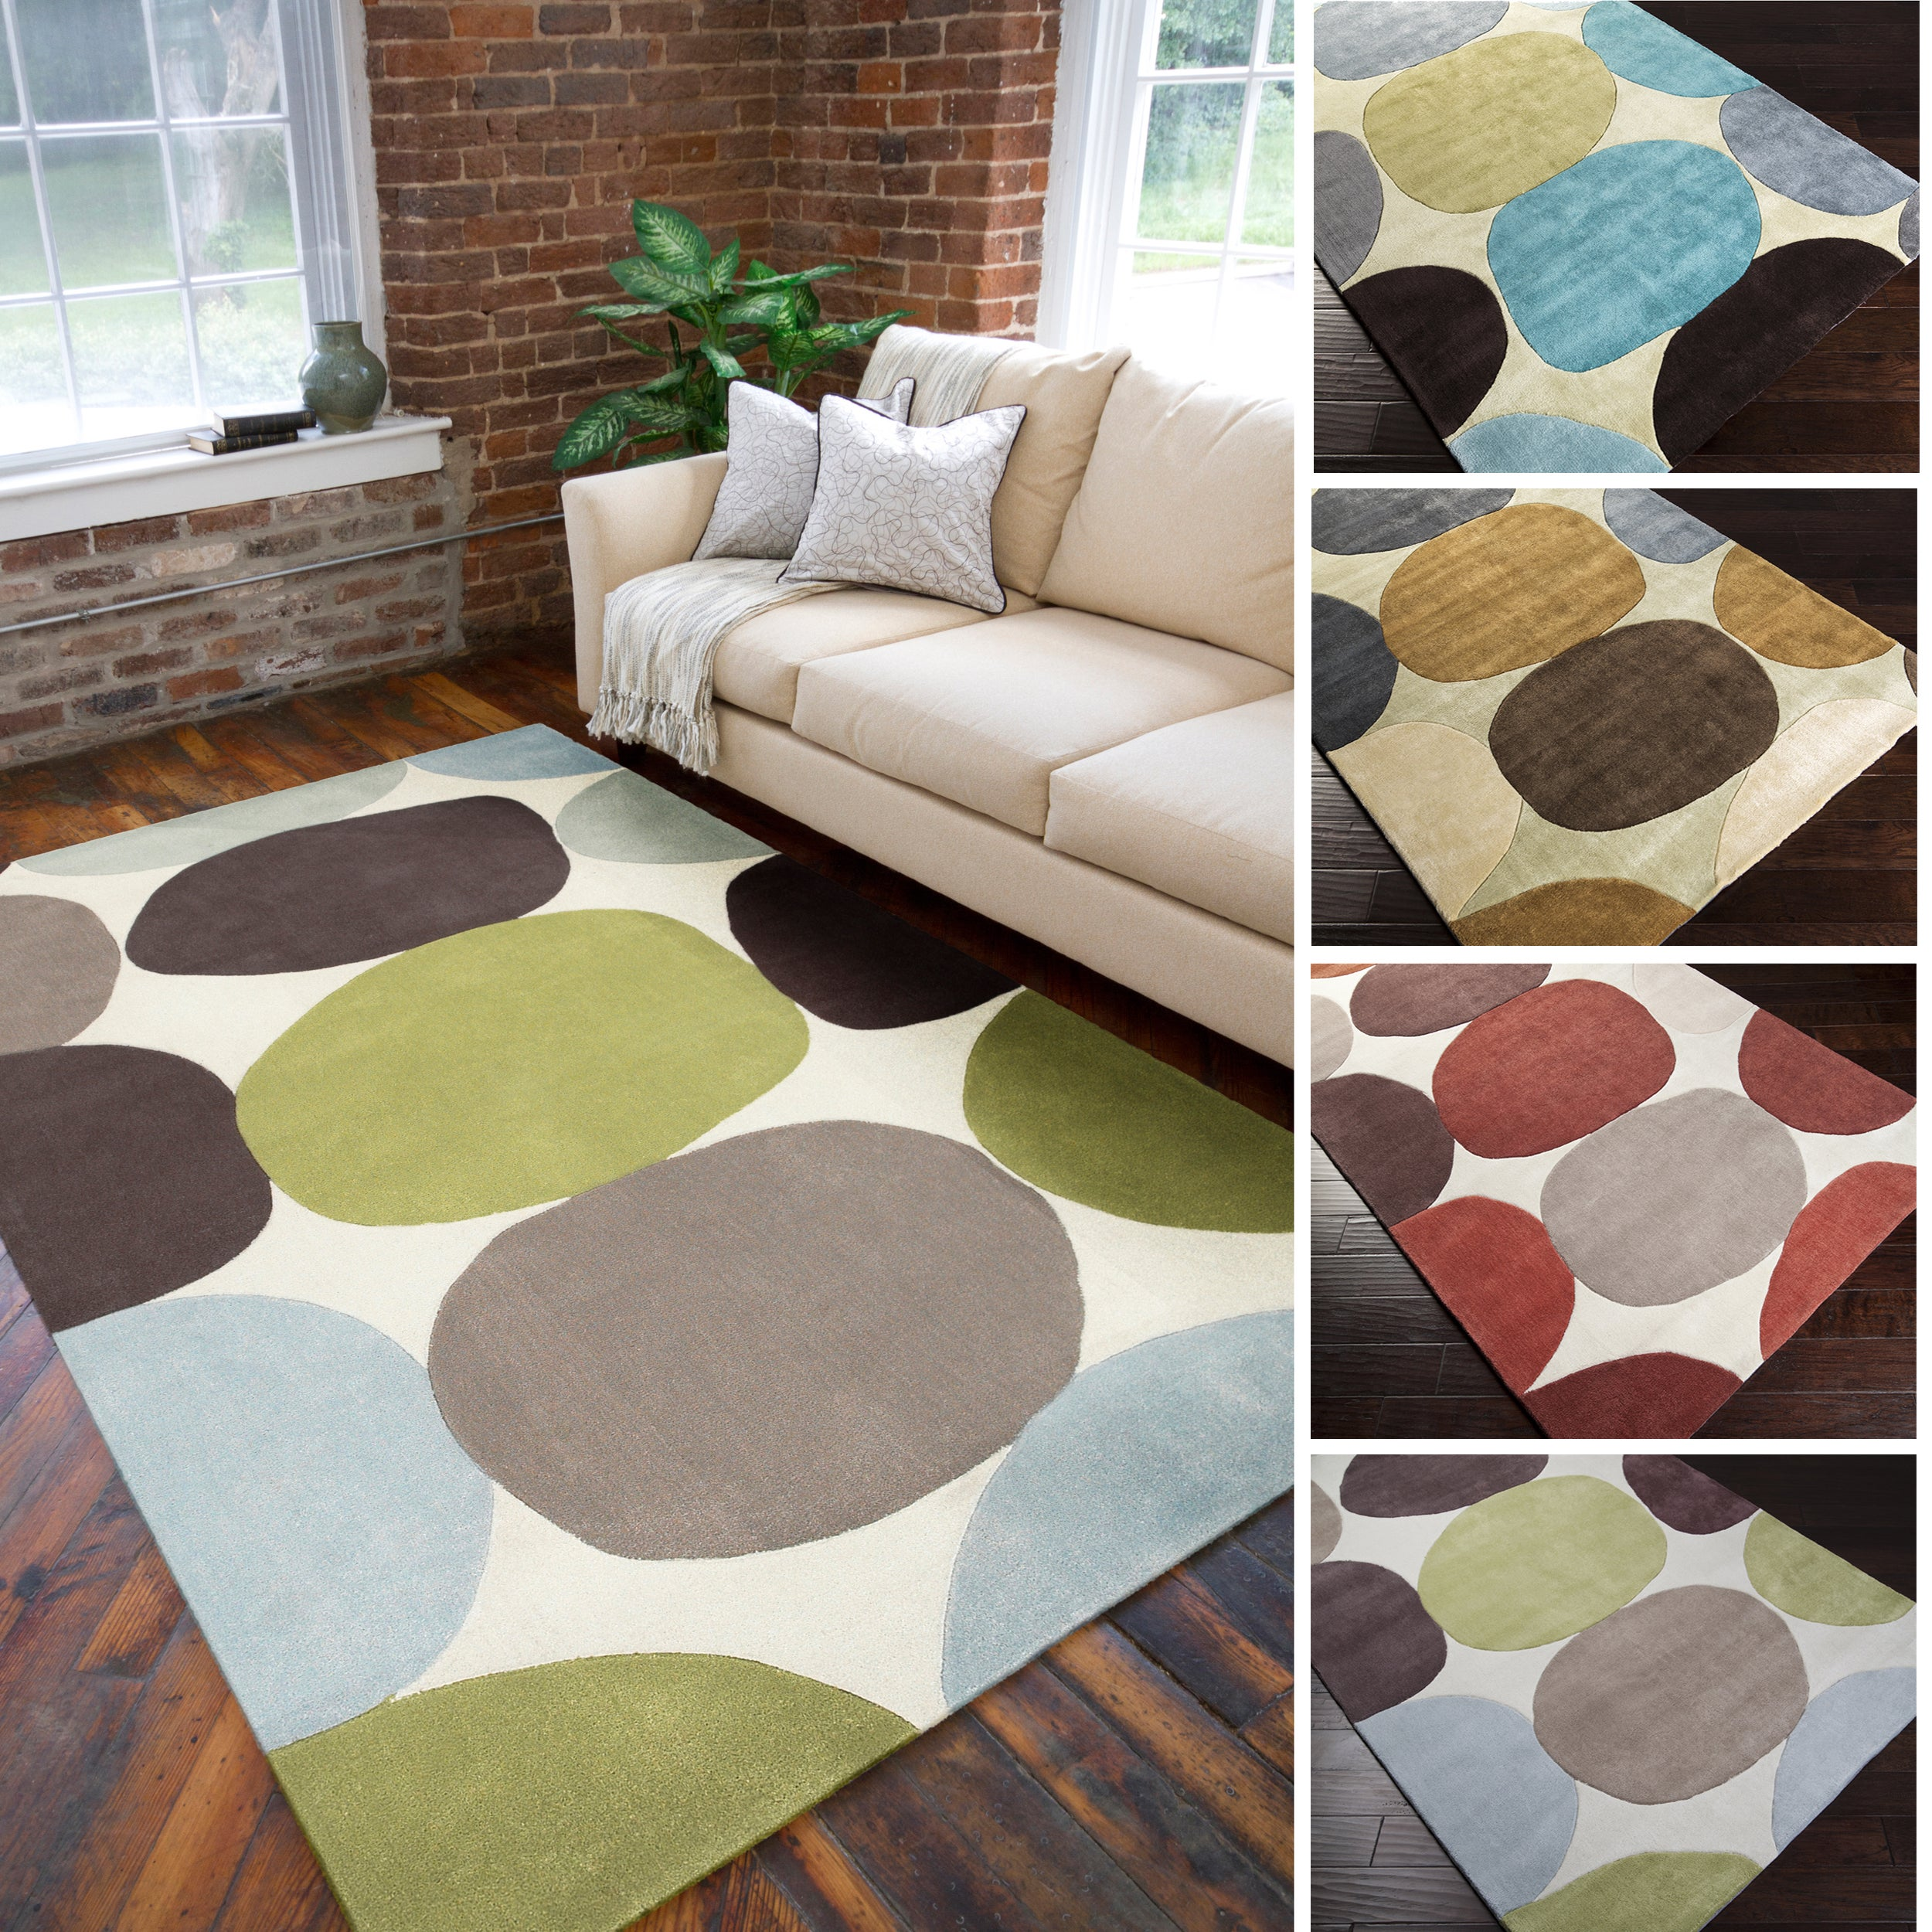 Overstock.com Hand-tufted Large Dot Geometric Area Rug (8' x 11') at Sears.com